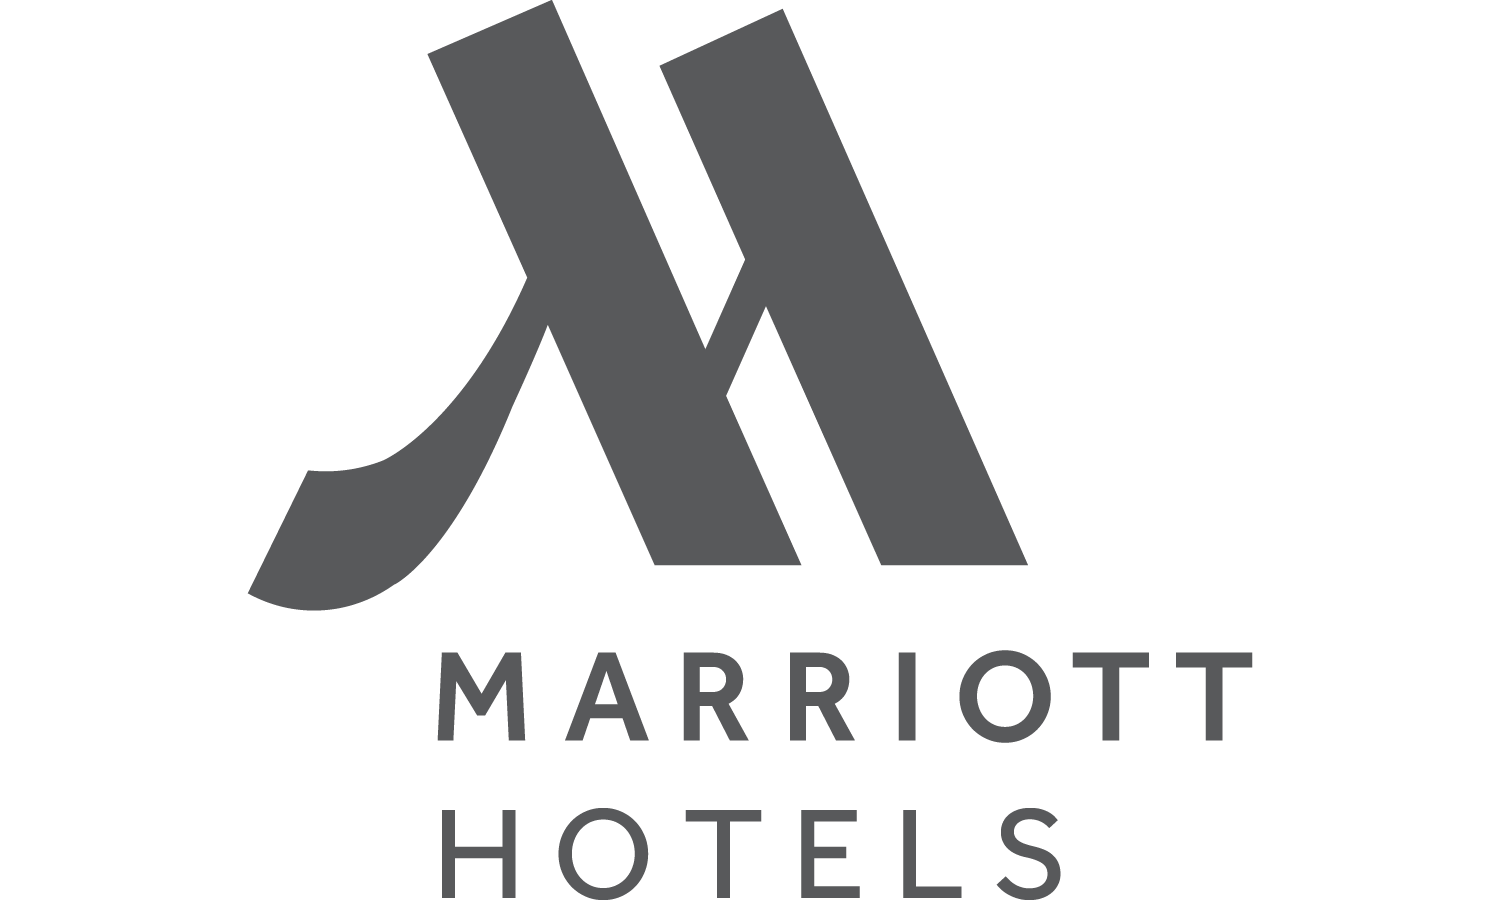 Marriott logo png. Hotels and resorts